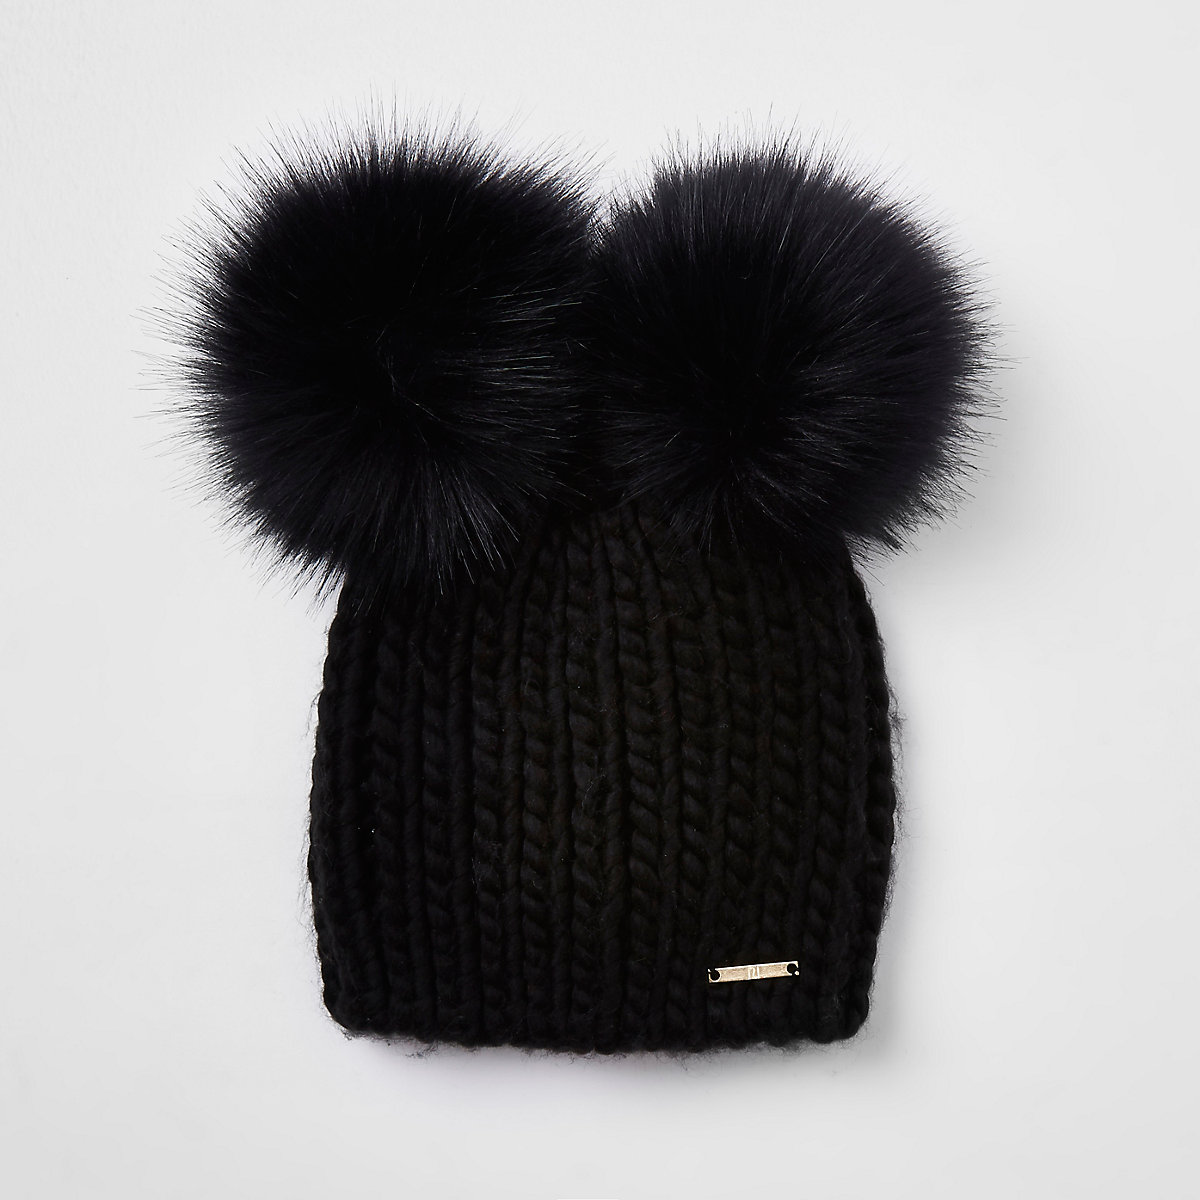 Black faux fur double pom pom beanie - Hats - Accessories - women 118a01fcf